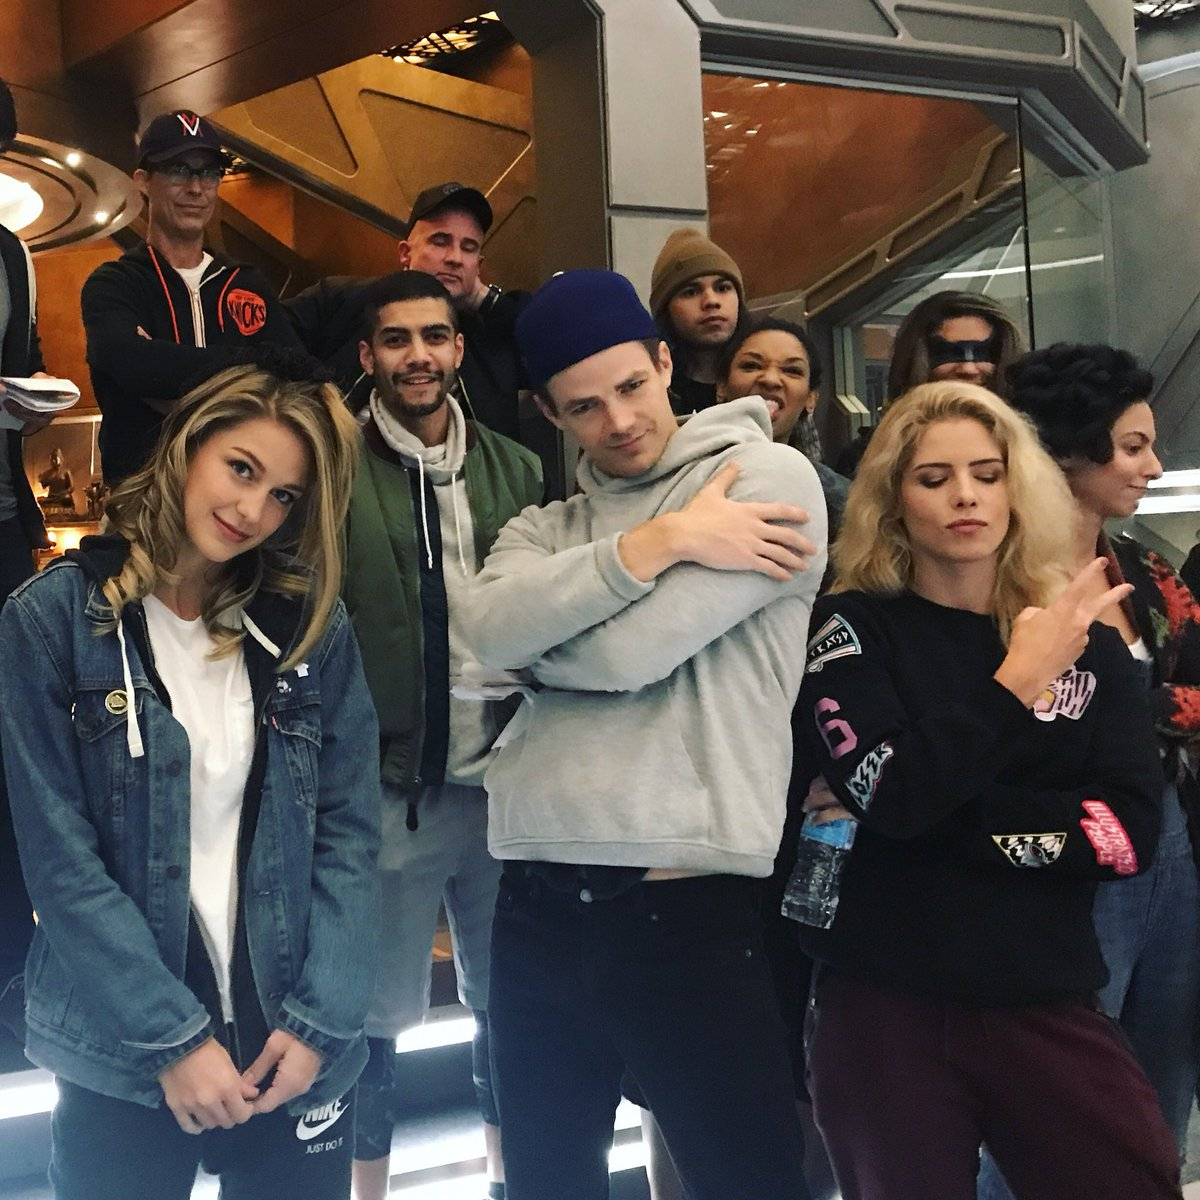 RT @caitylotz: Friends on the waverider. See you tonight #CrisisOnEarthX https://t.co/zs7HatltMj